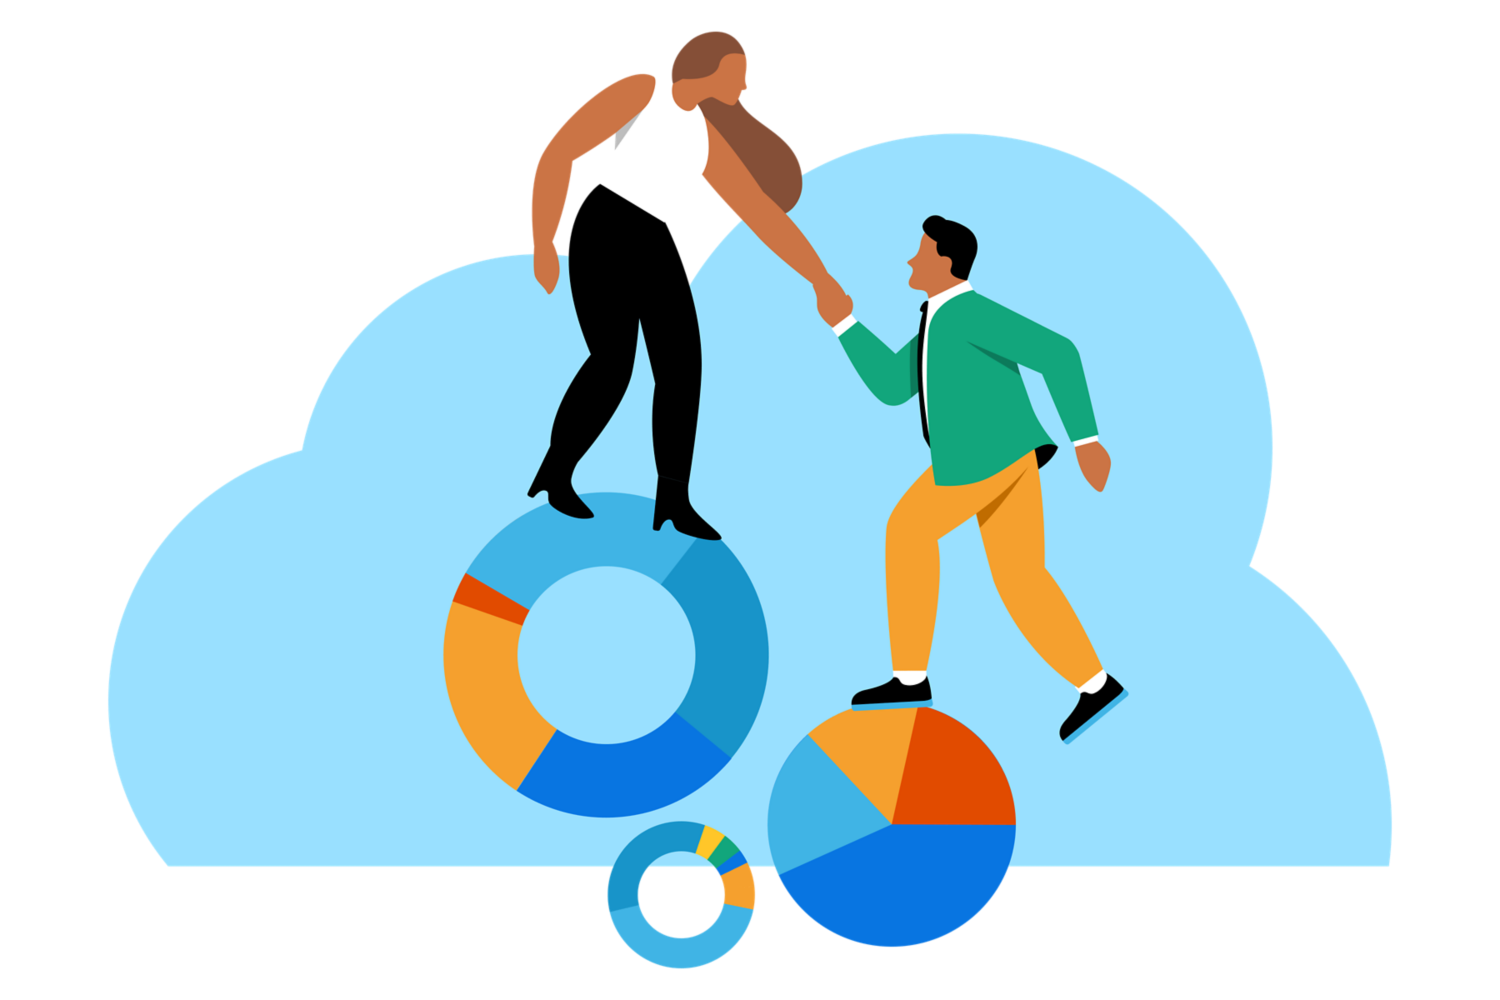 Two people climbing pie charts.